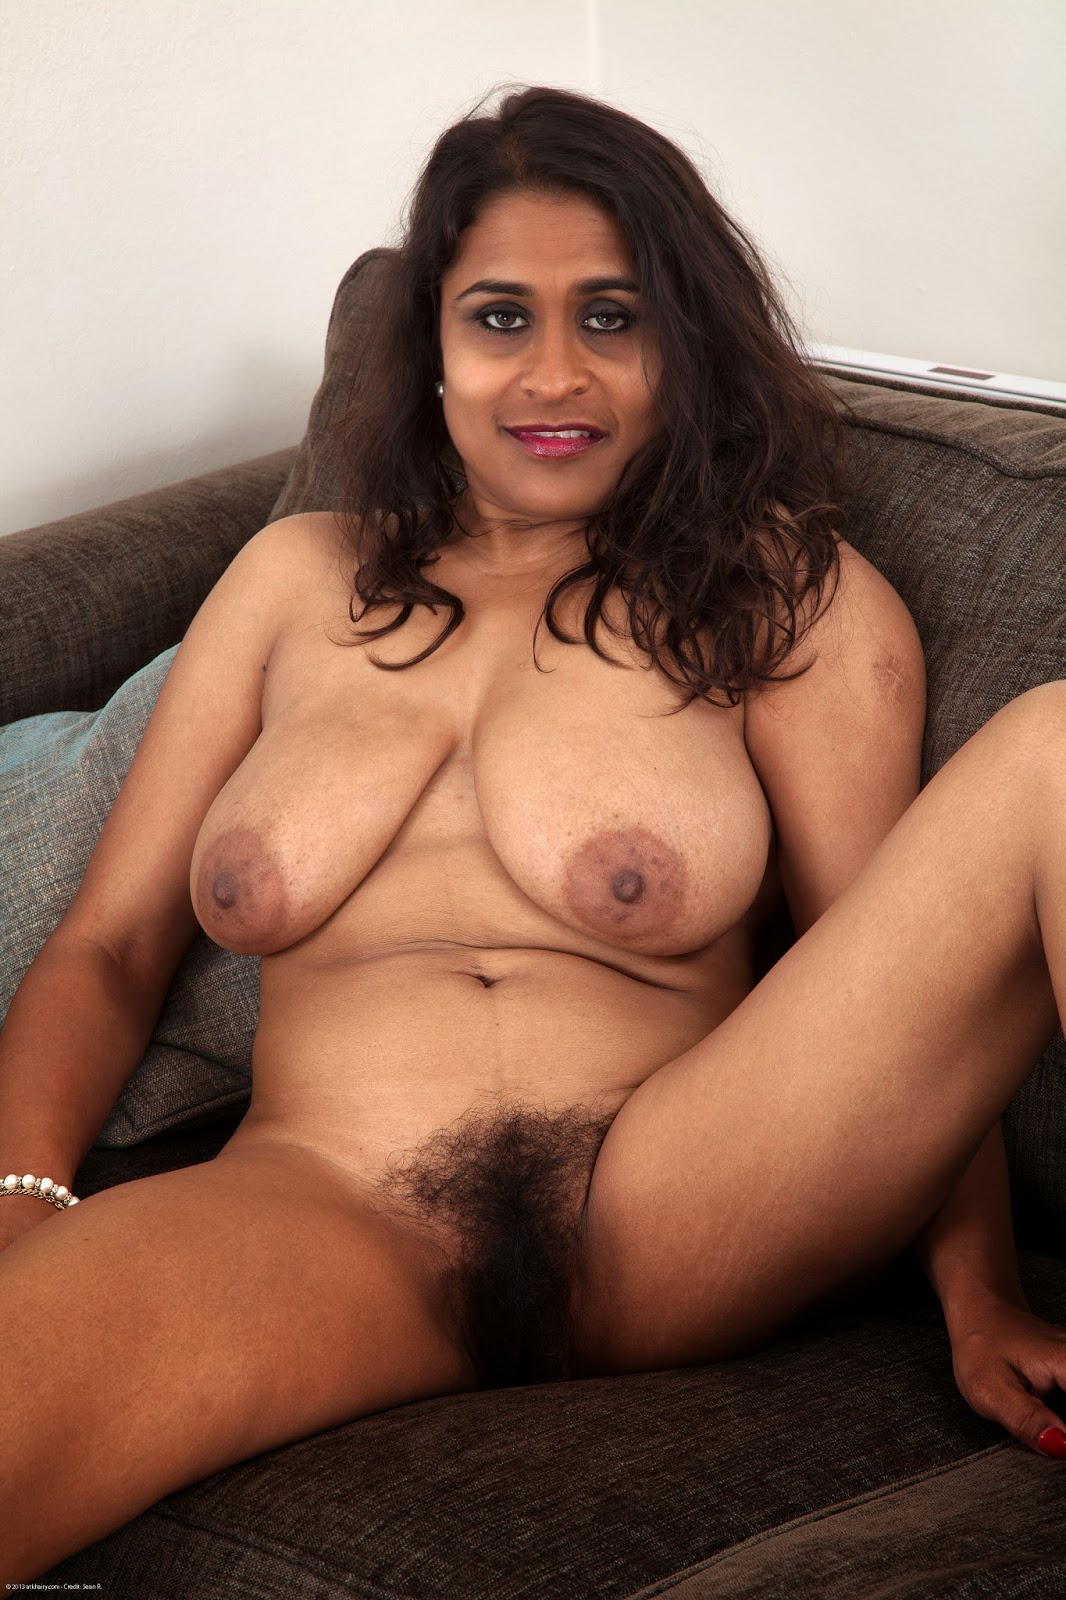 hd nude indian woman photos old